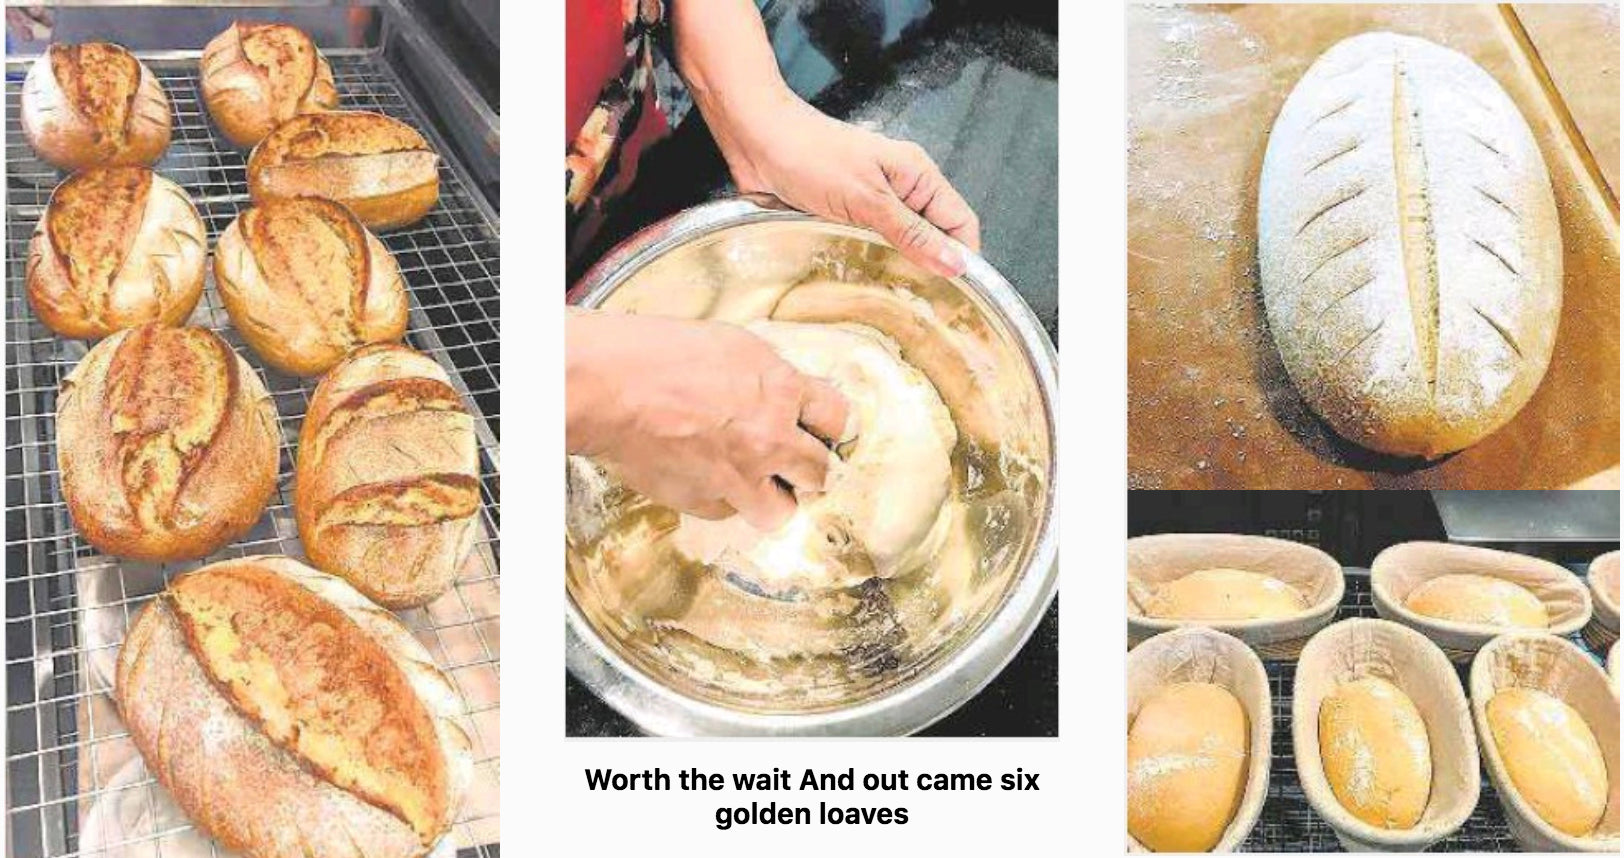 The 'Knead' to Bake images